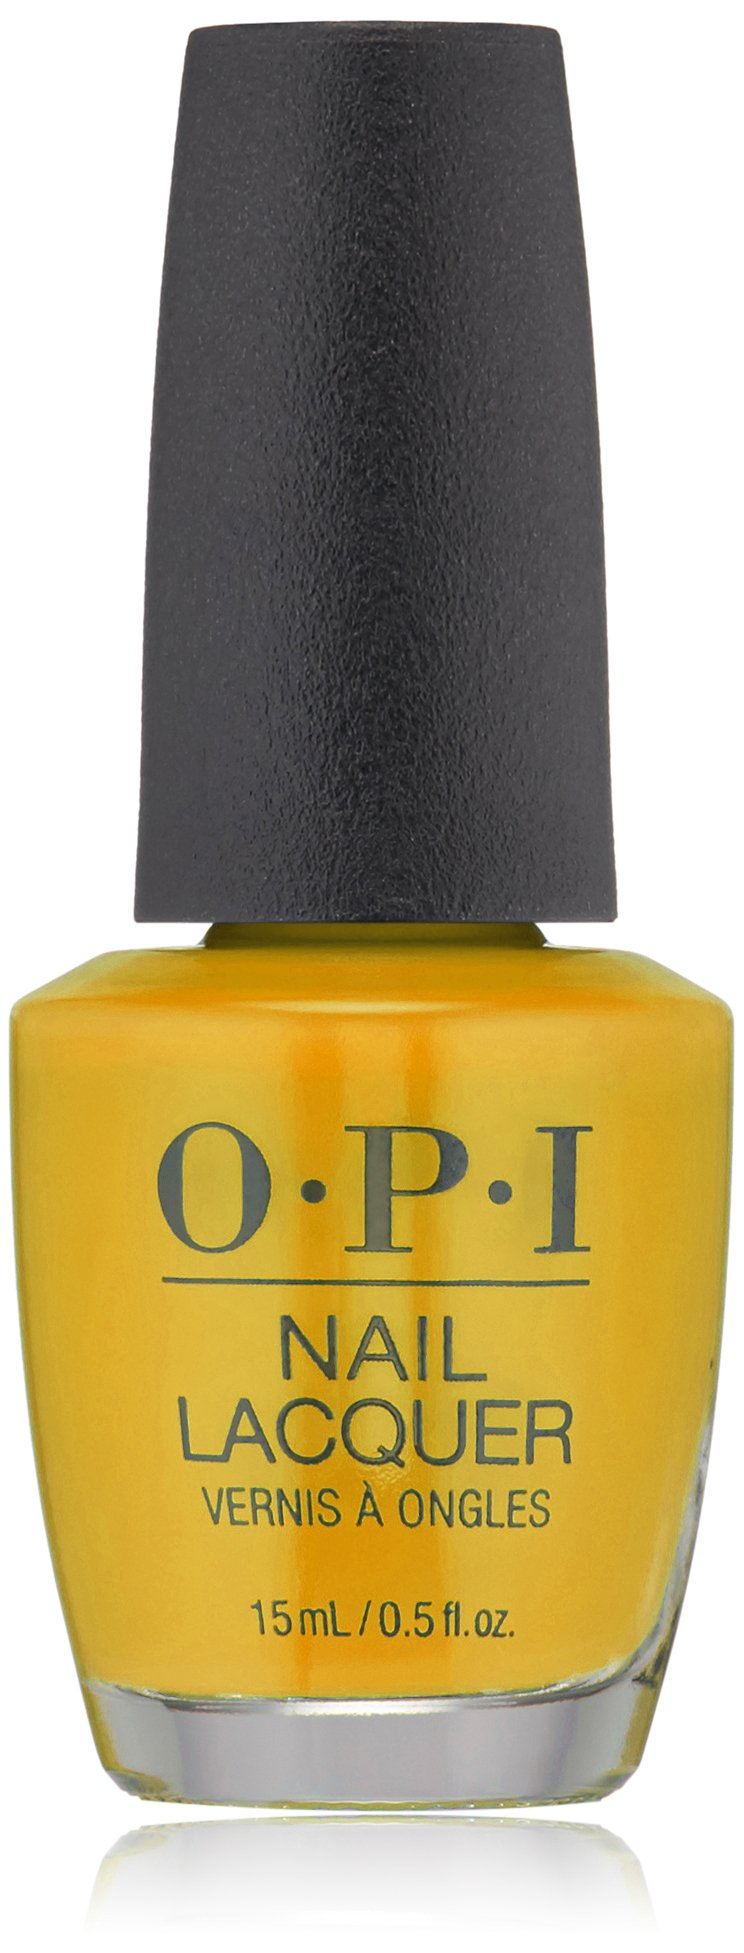 OPI Nail Lacquer, Sun, Sea, and Sand In My Pants, 0.5 fl. oz.